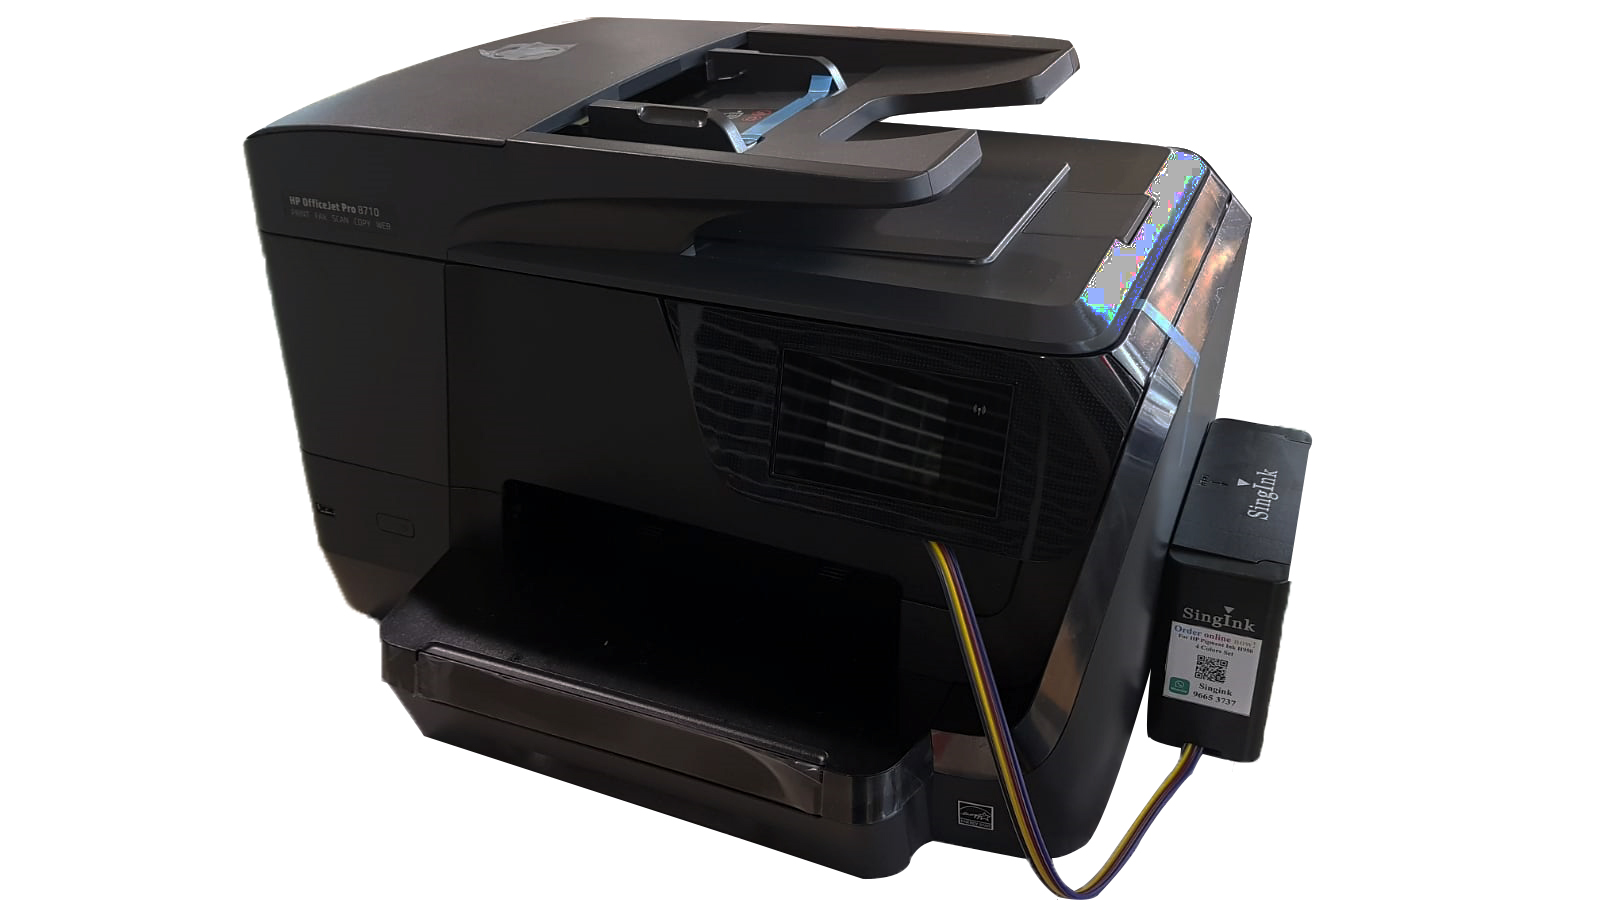 Printer HP Officejet Pro 8710 with Ink Tank System